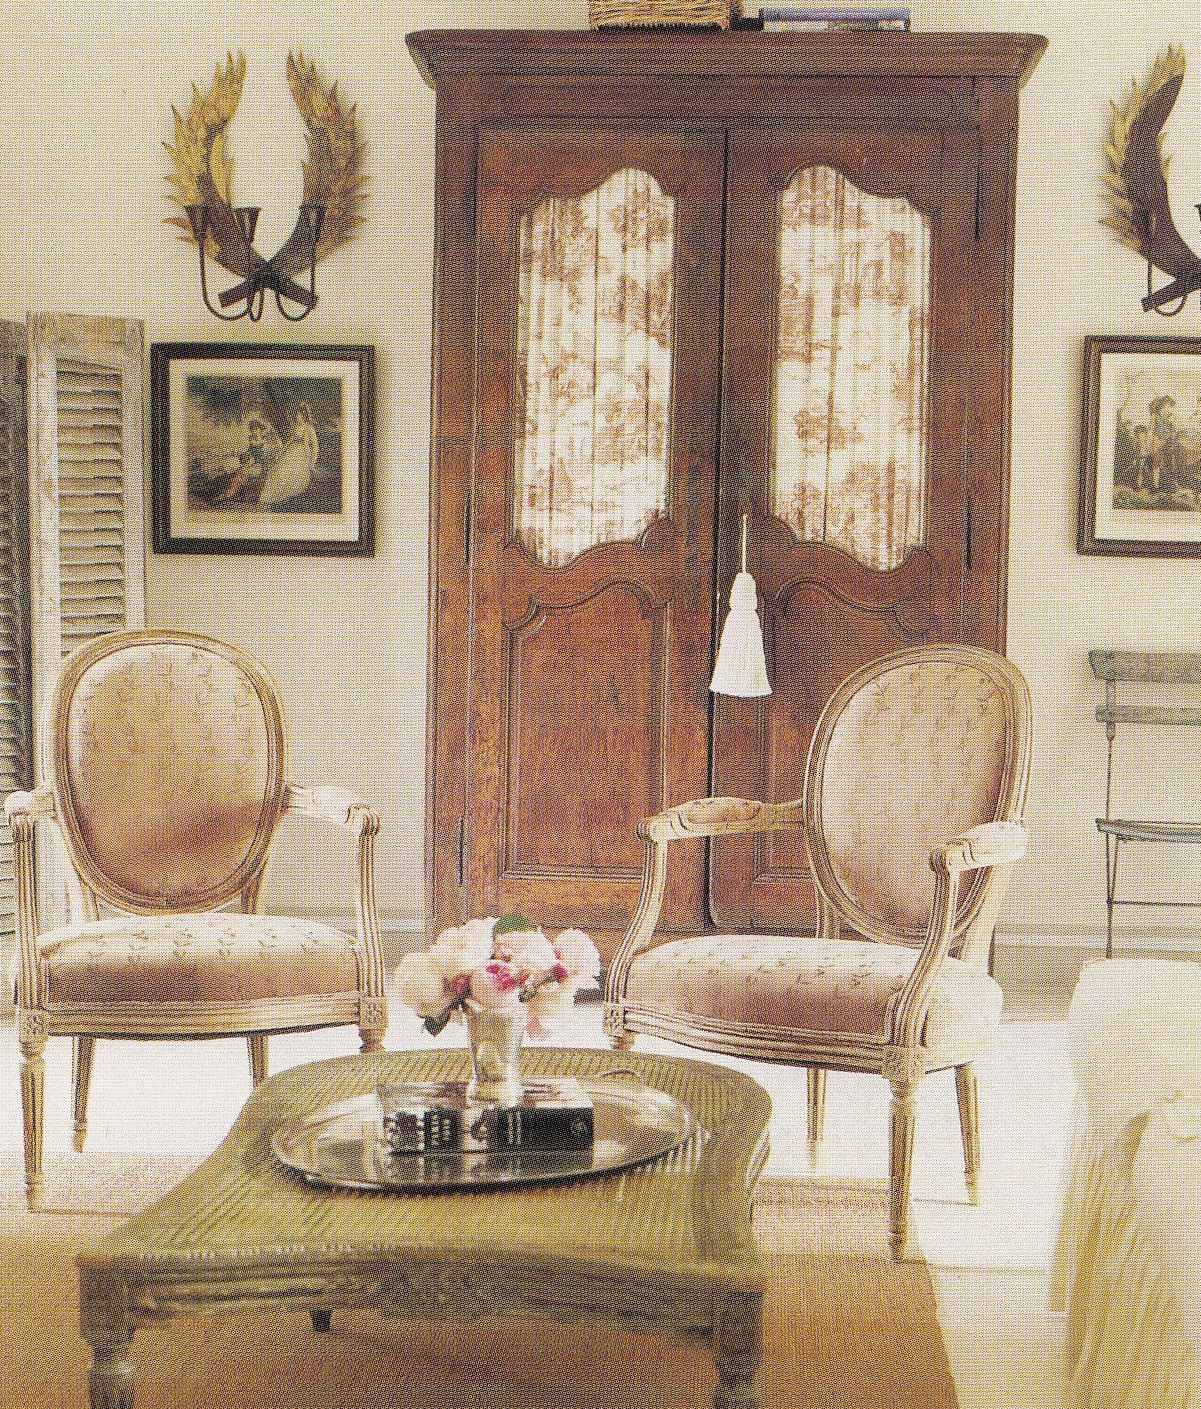 Montecito Home Interior Designer Lucinda Lester Published Country French Decorating By Better Homes English Decor French Country Decorating French Decorating